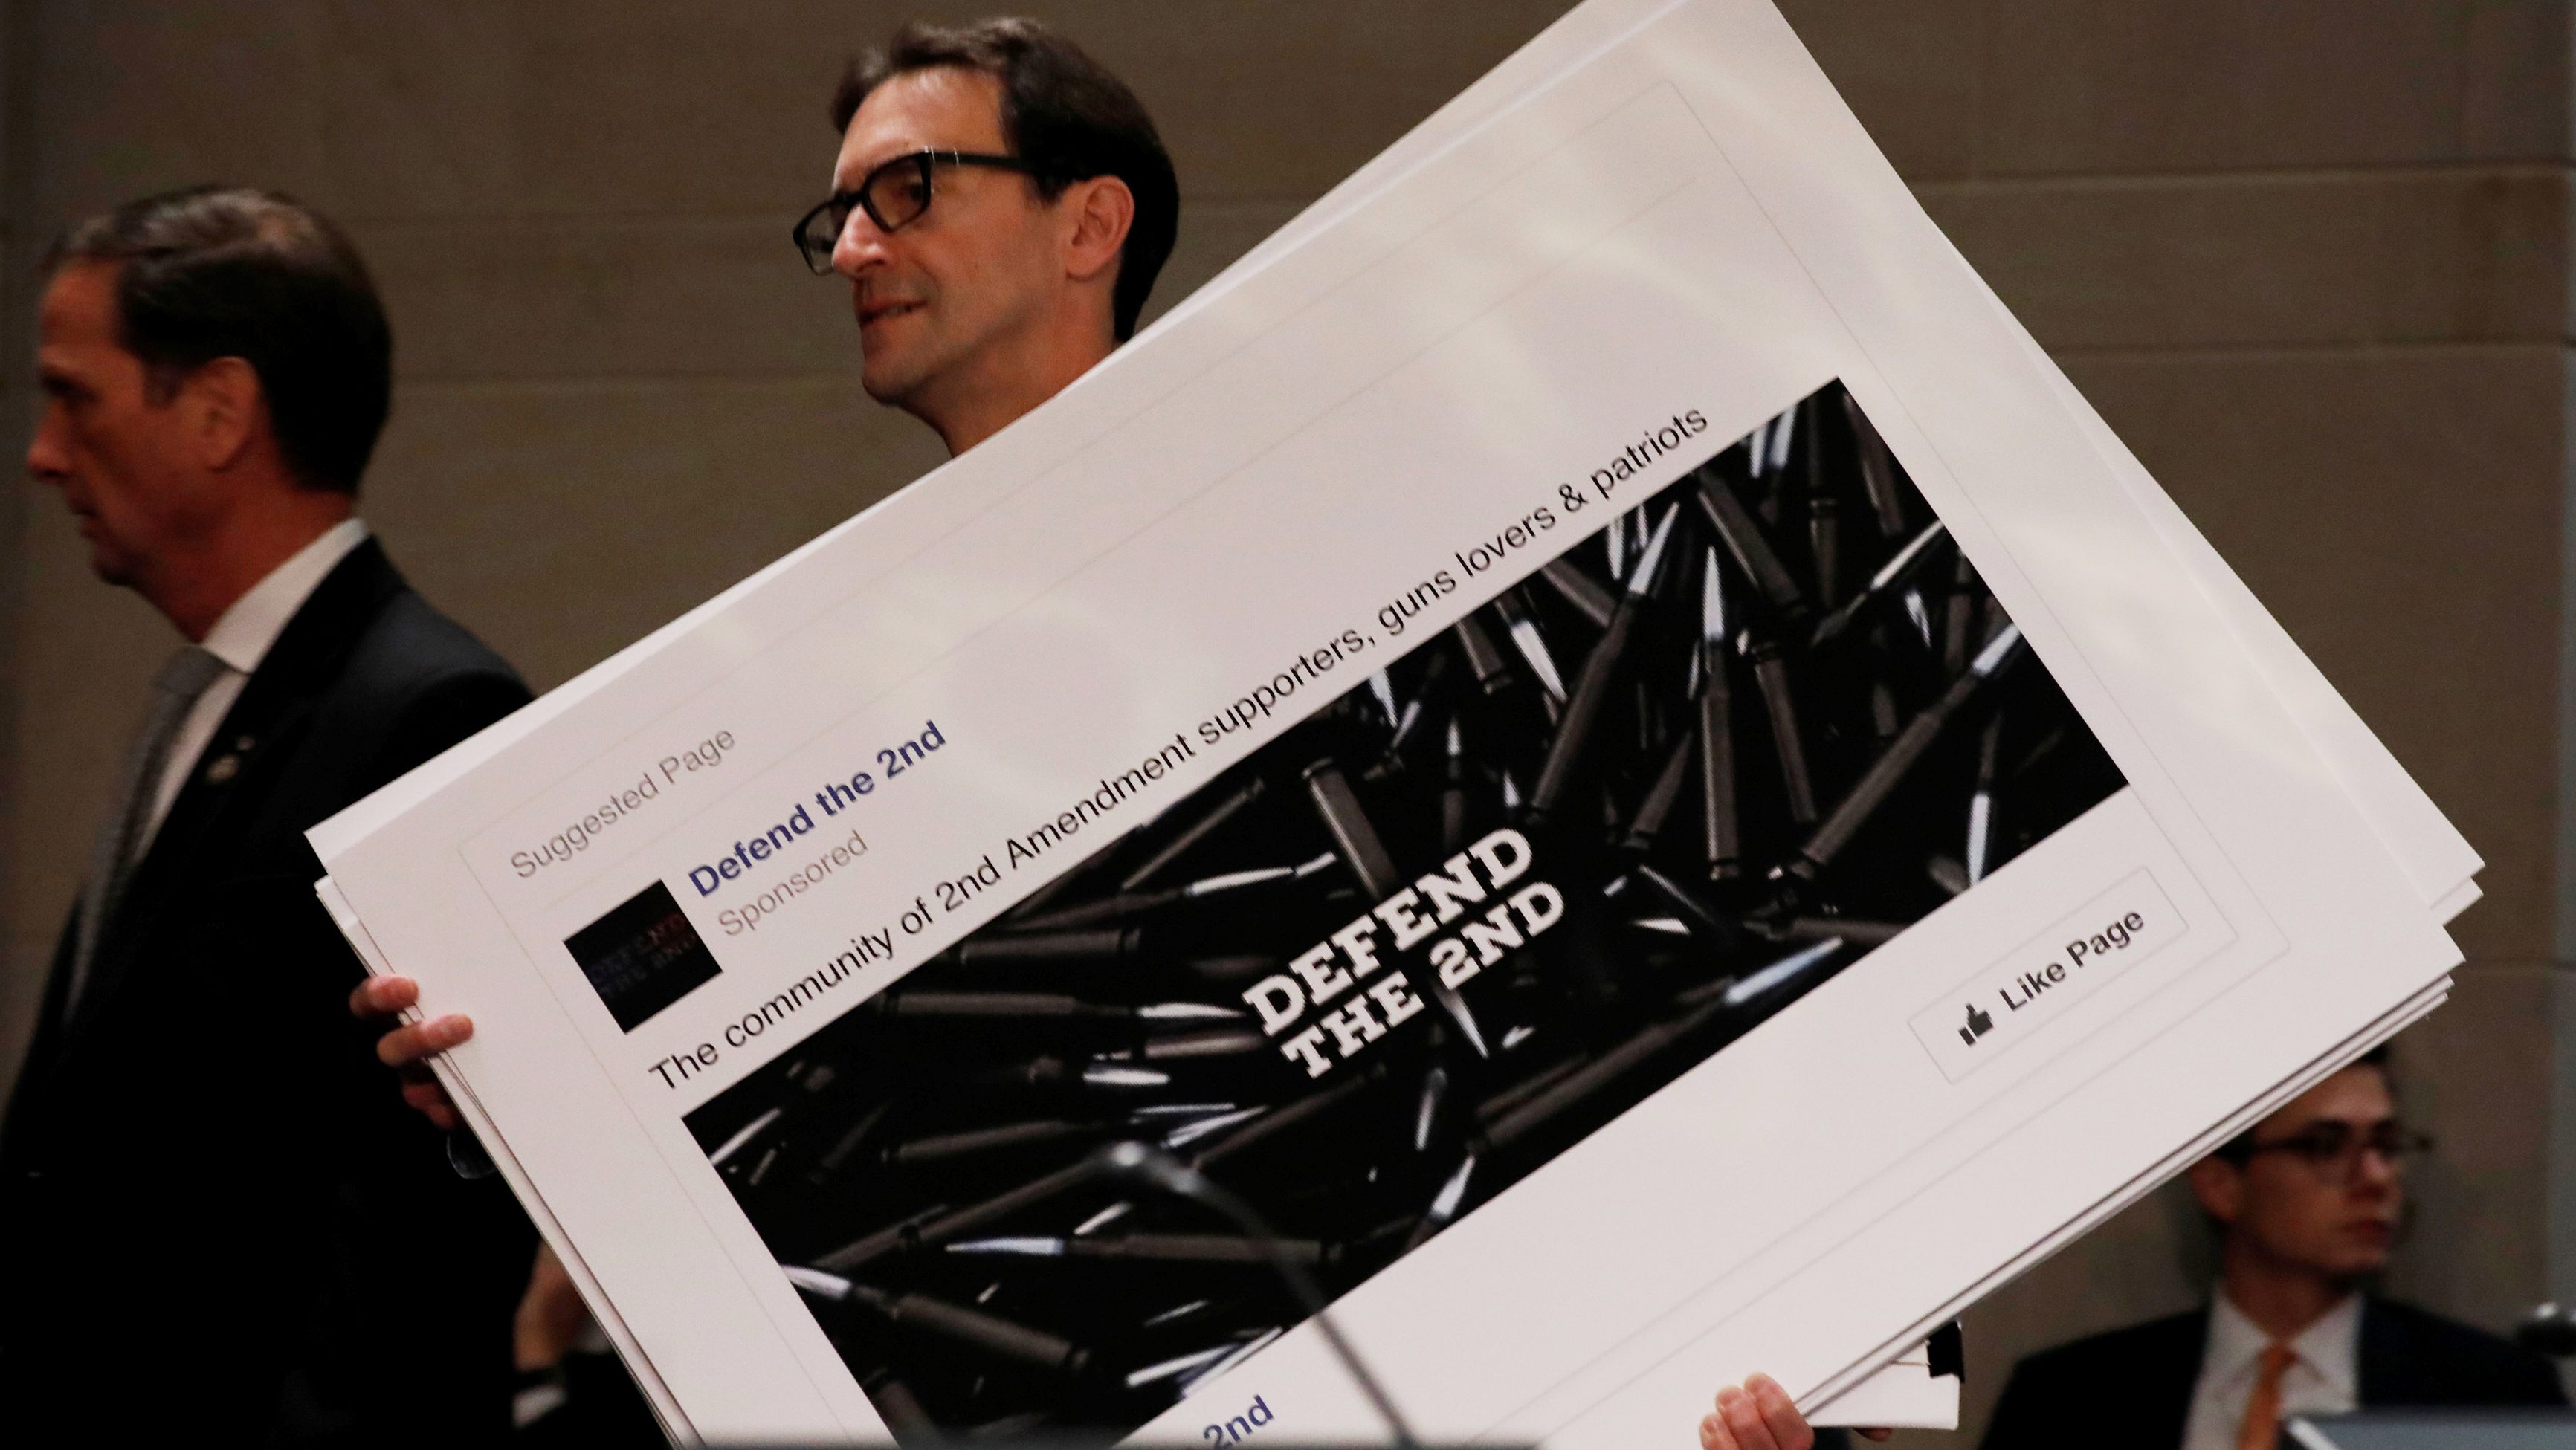 An aide puts out examples of Facebook pages, as executives appear before the House Intelligence Committee to answer questions related to Russian use of social media to influence U.S. elections, on Capitol Hill in Washington, U.S., November 1, 2017. REUTERS/Aaron P. Bernstein - RC1CA5468E10